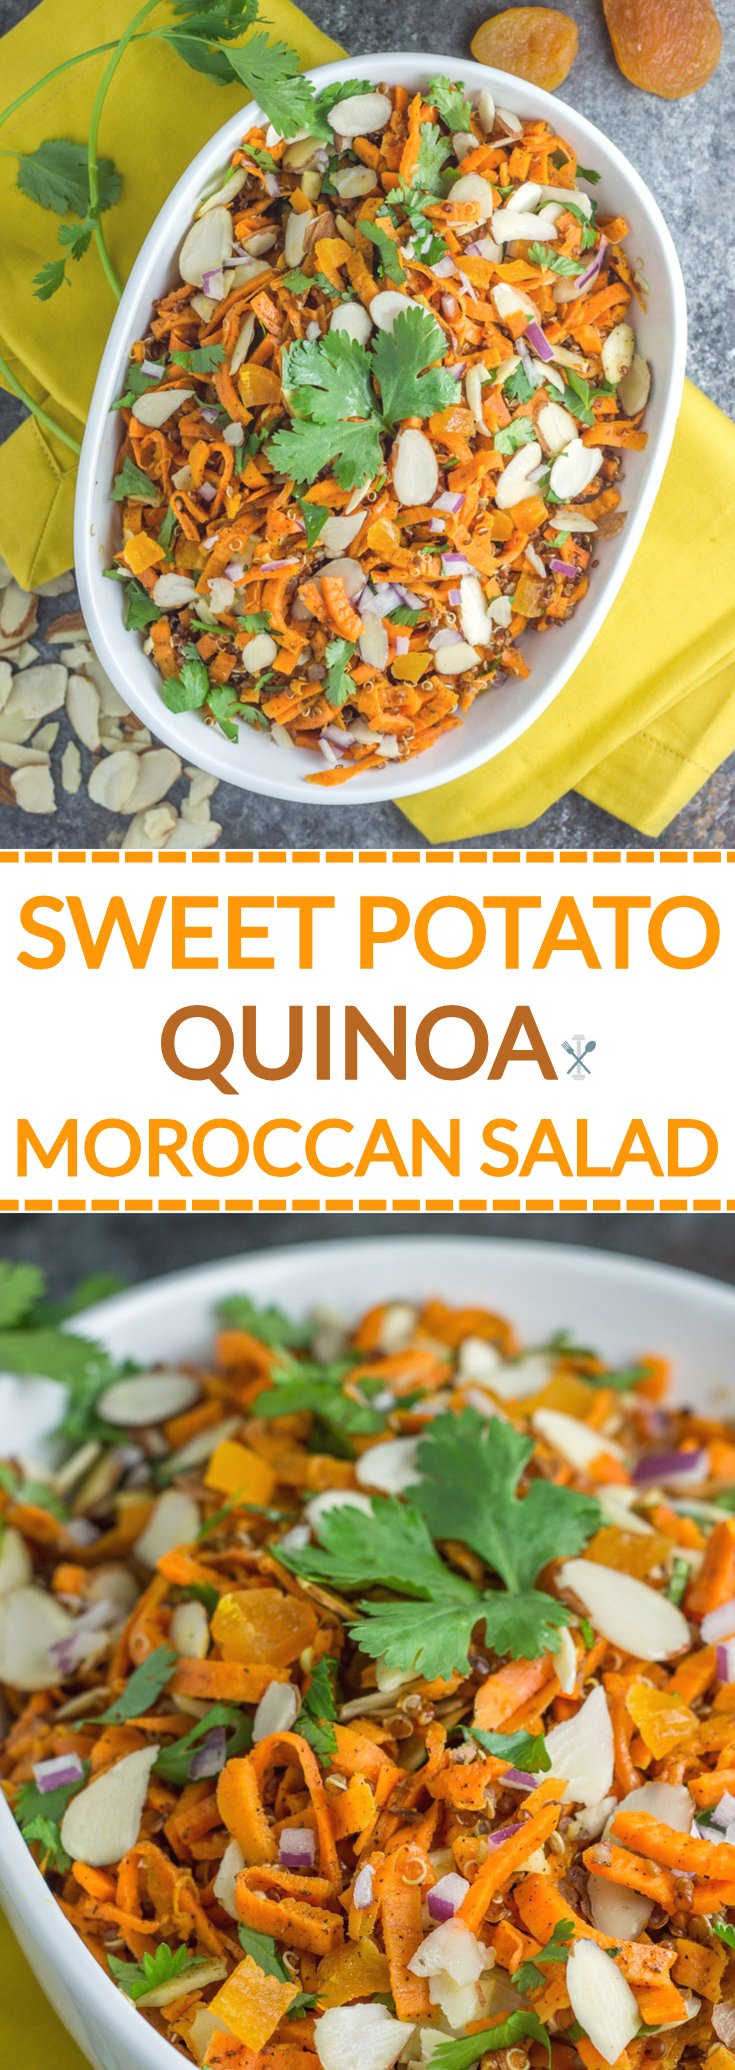 This plant-based salad can be served hot or cold. Packed with flavor and full of nutrients too!